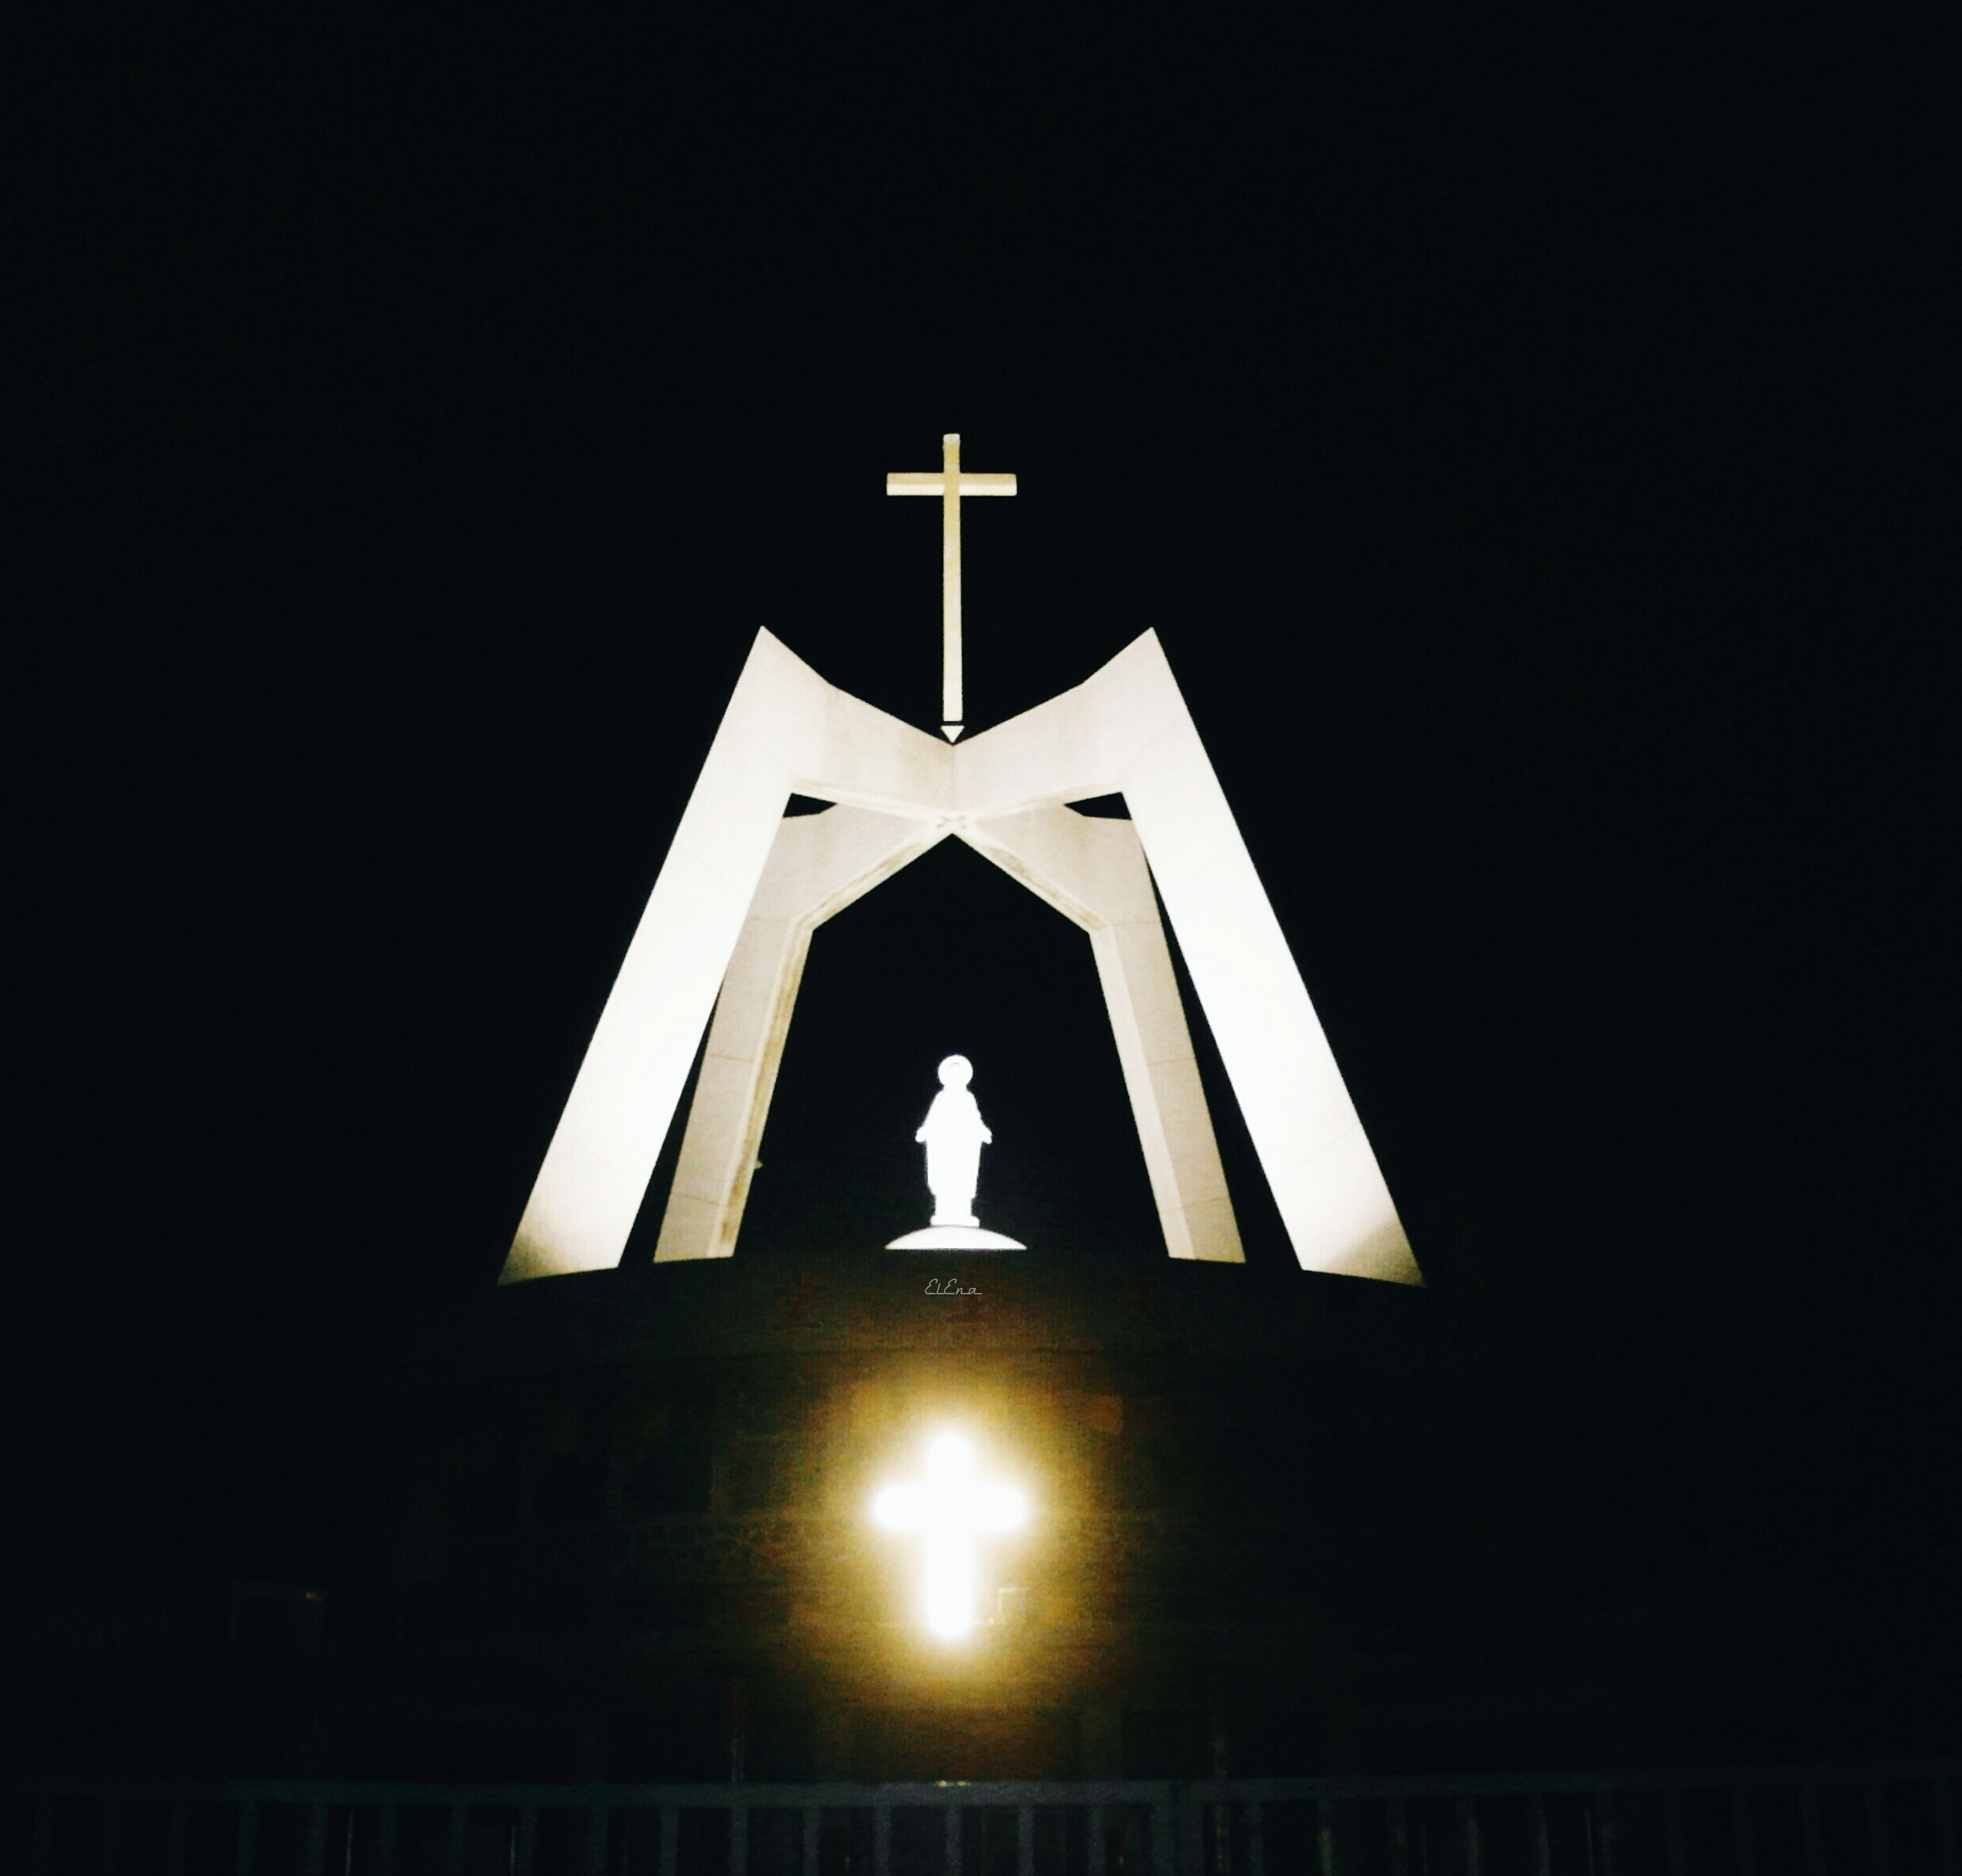 religion, spirituality, church, place of worship, low angle view, architecture, built structure, cross, building exterior, copy space, clear sky, night, high section, no people, dark, outdoors, human representation, illuminated